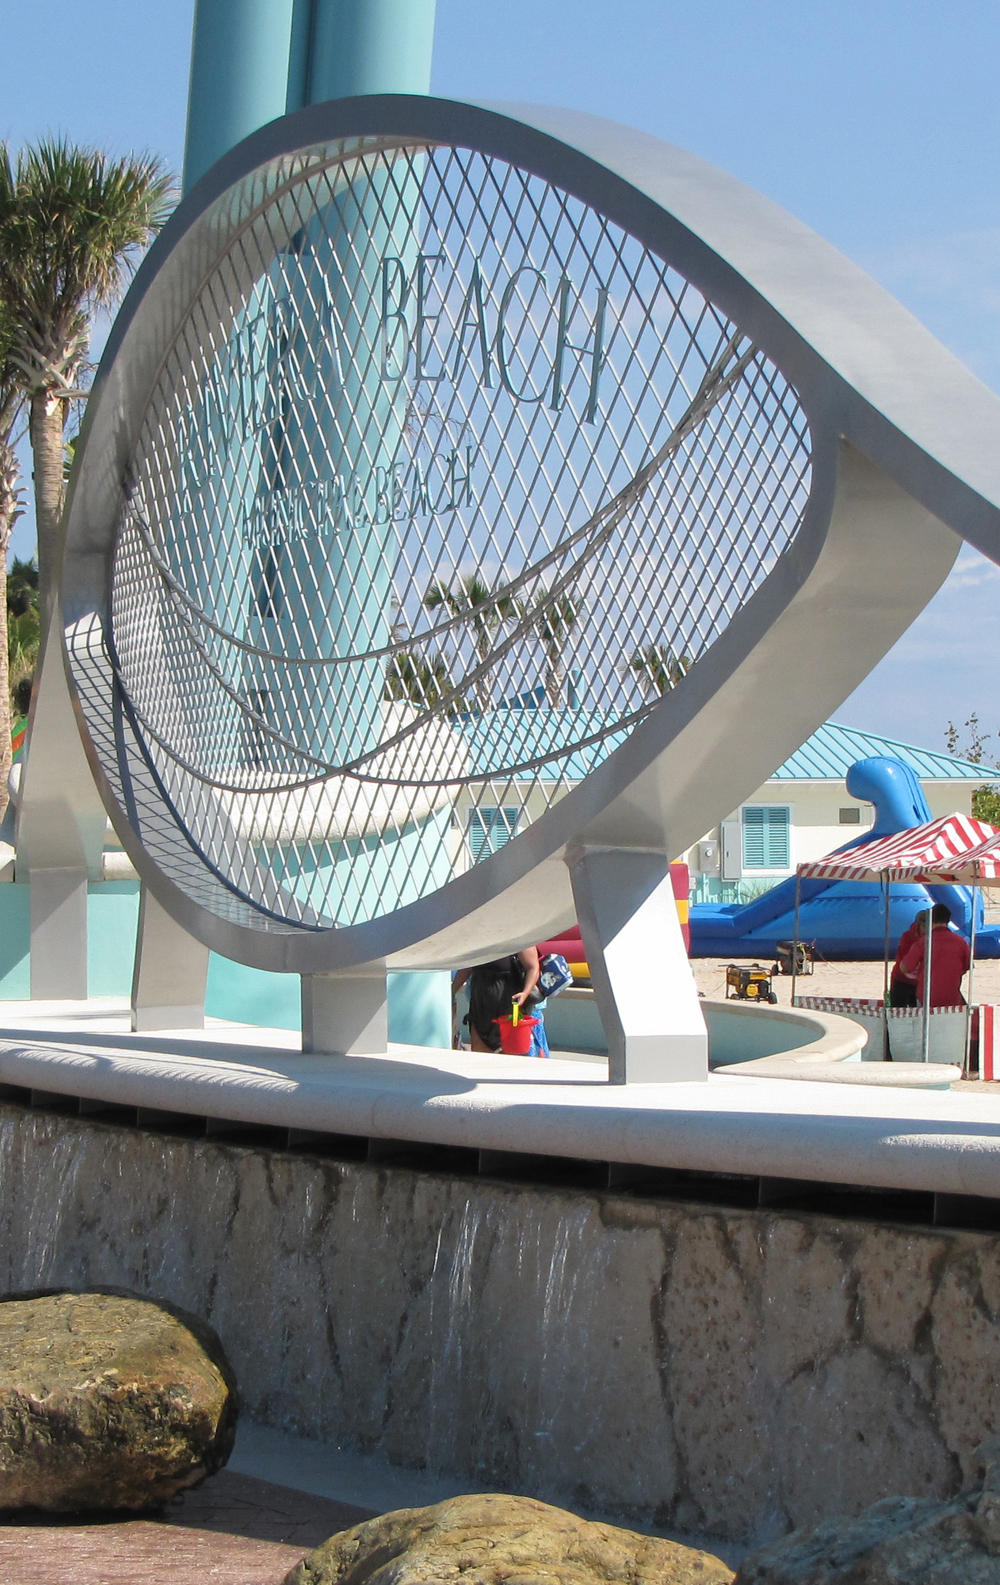 City of Riviera Beach Municipal Beach Park Ocean Mall Stainless Steel Sign Fountain.jpg